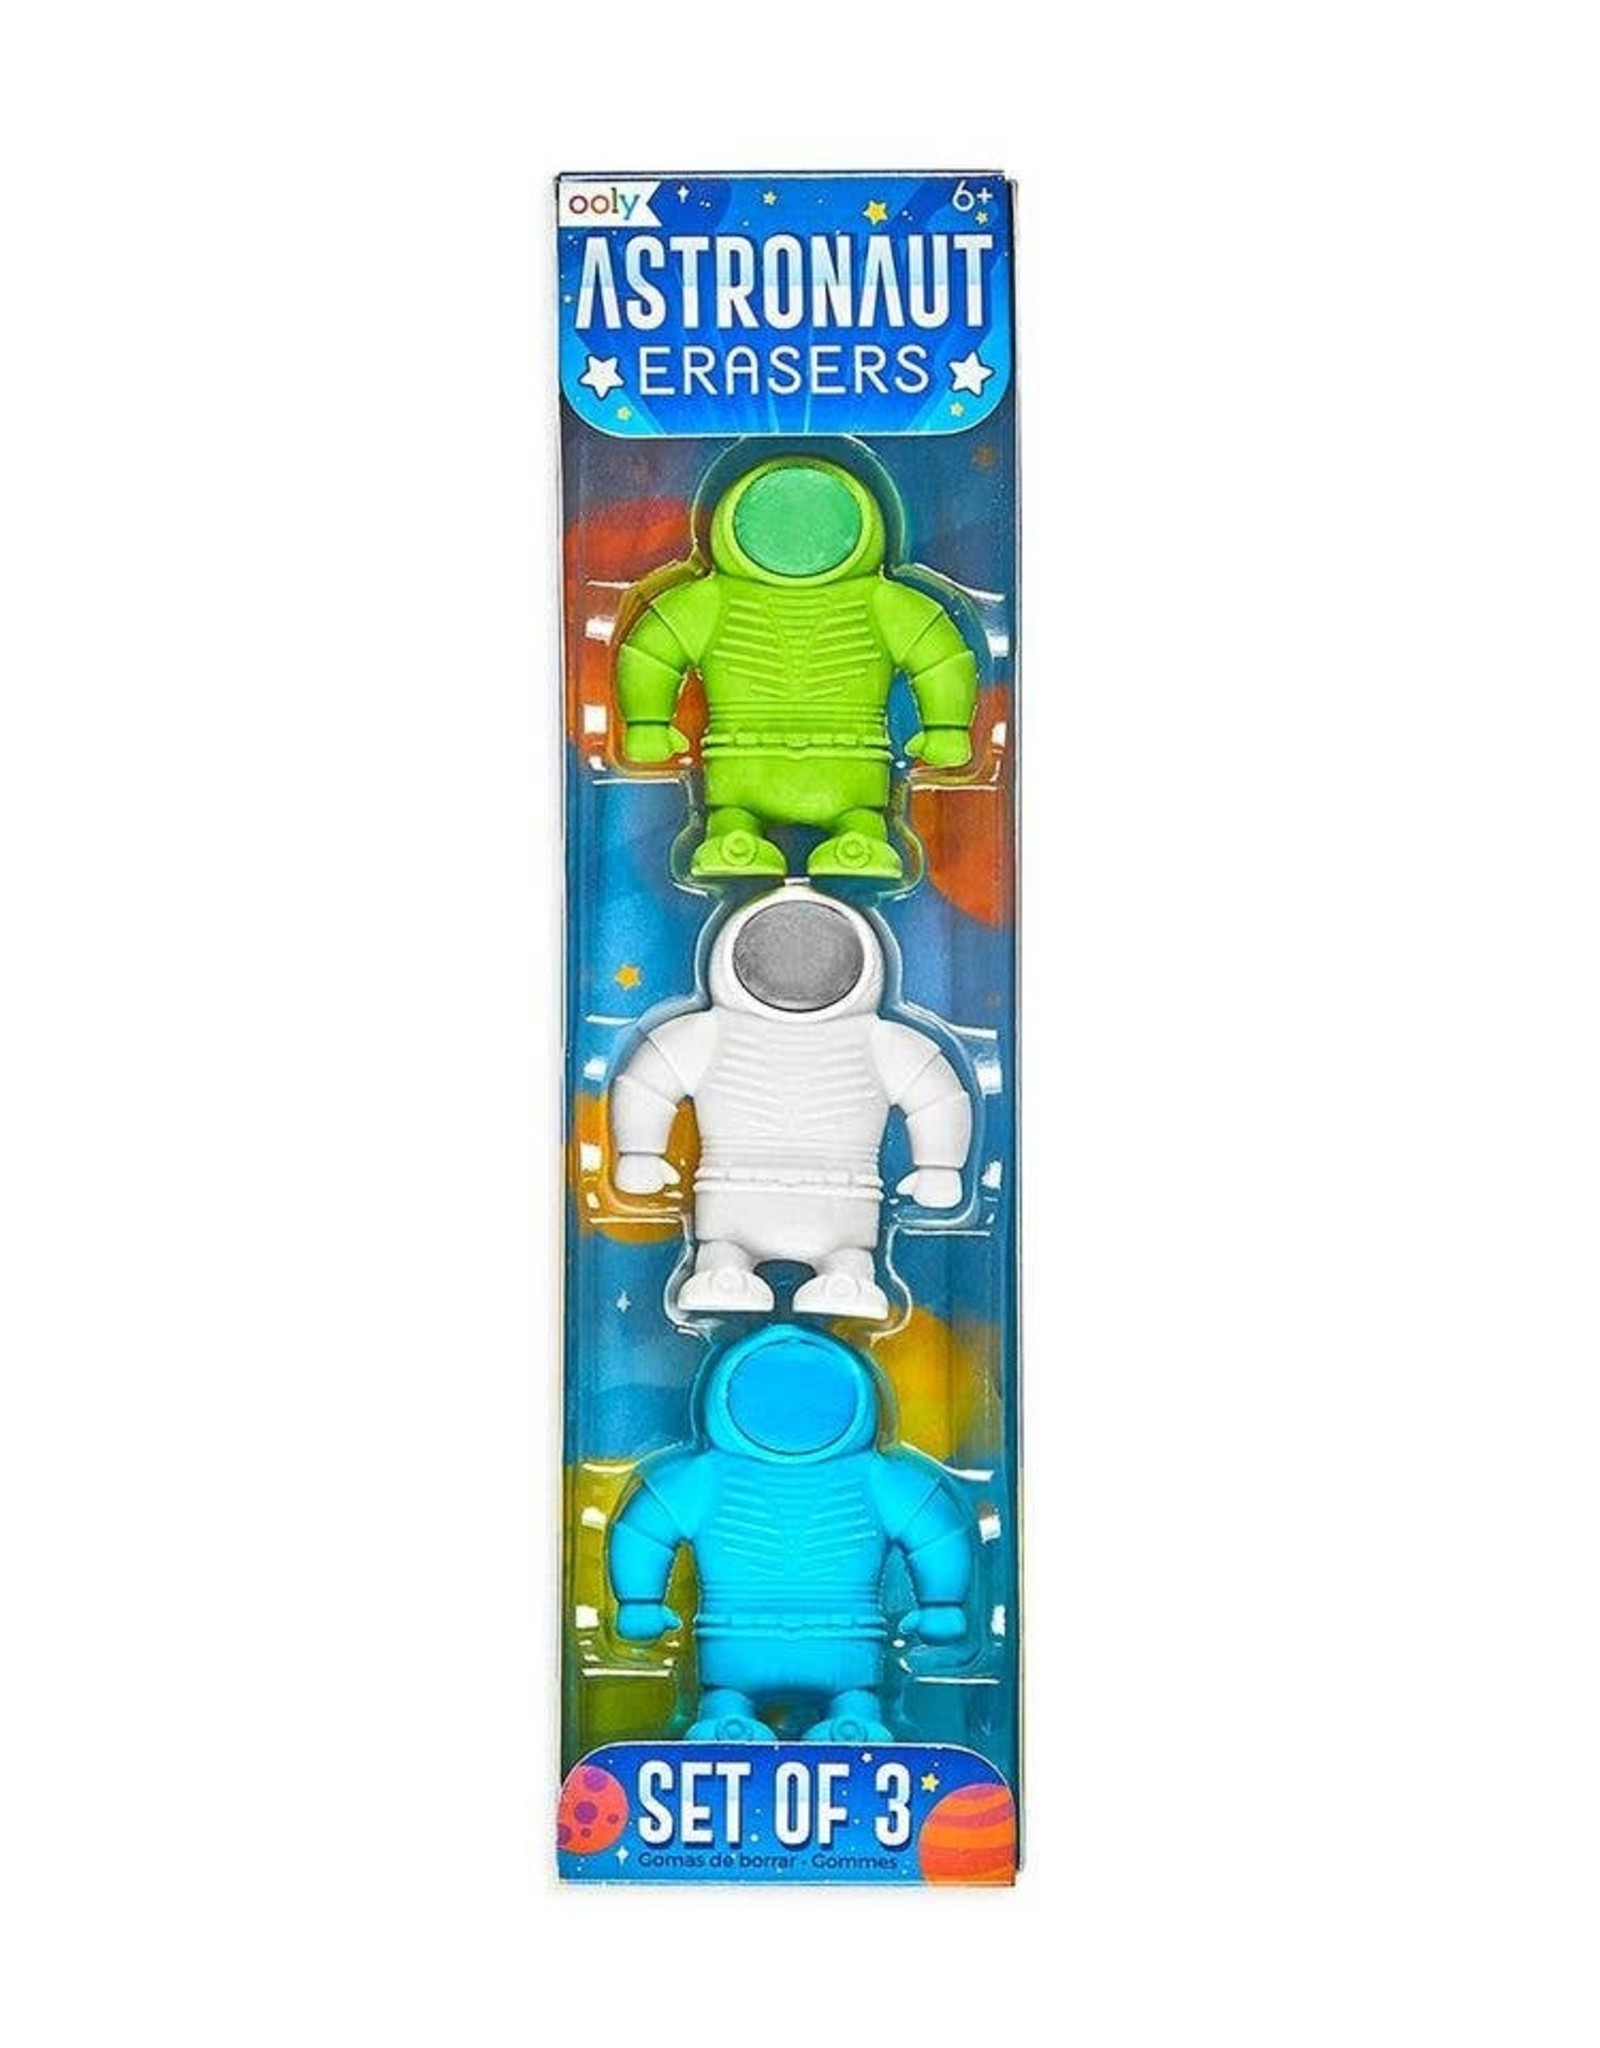 ooly Astronaut Erasers - Set of 3